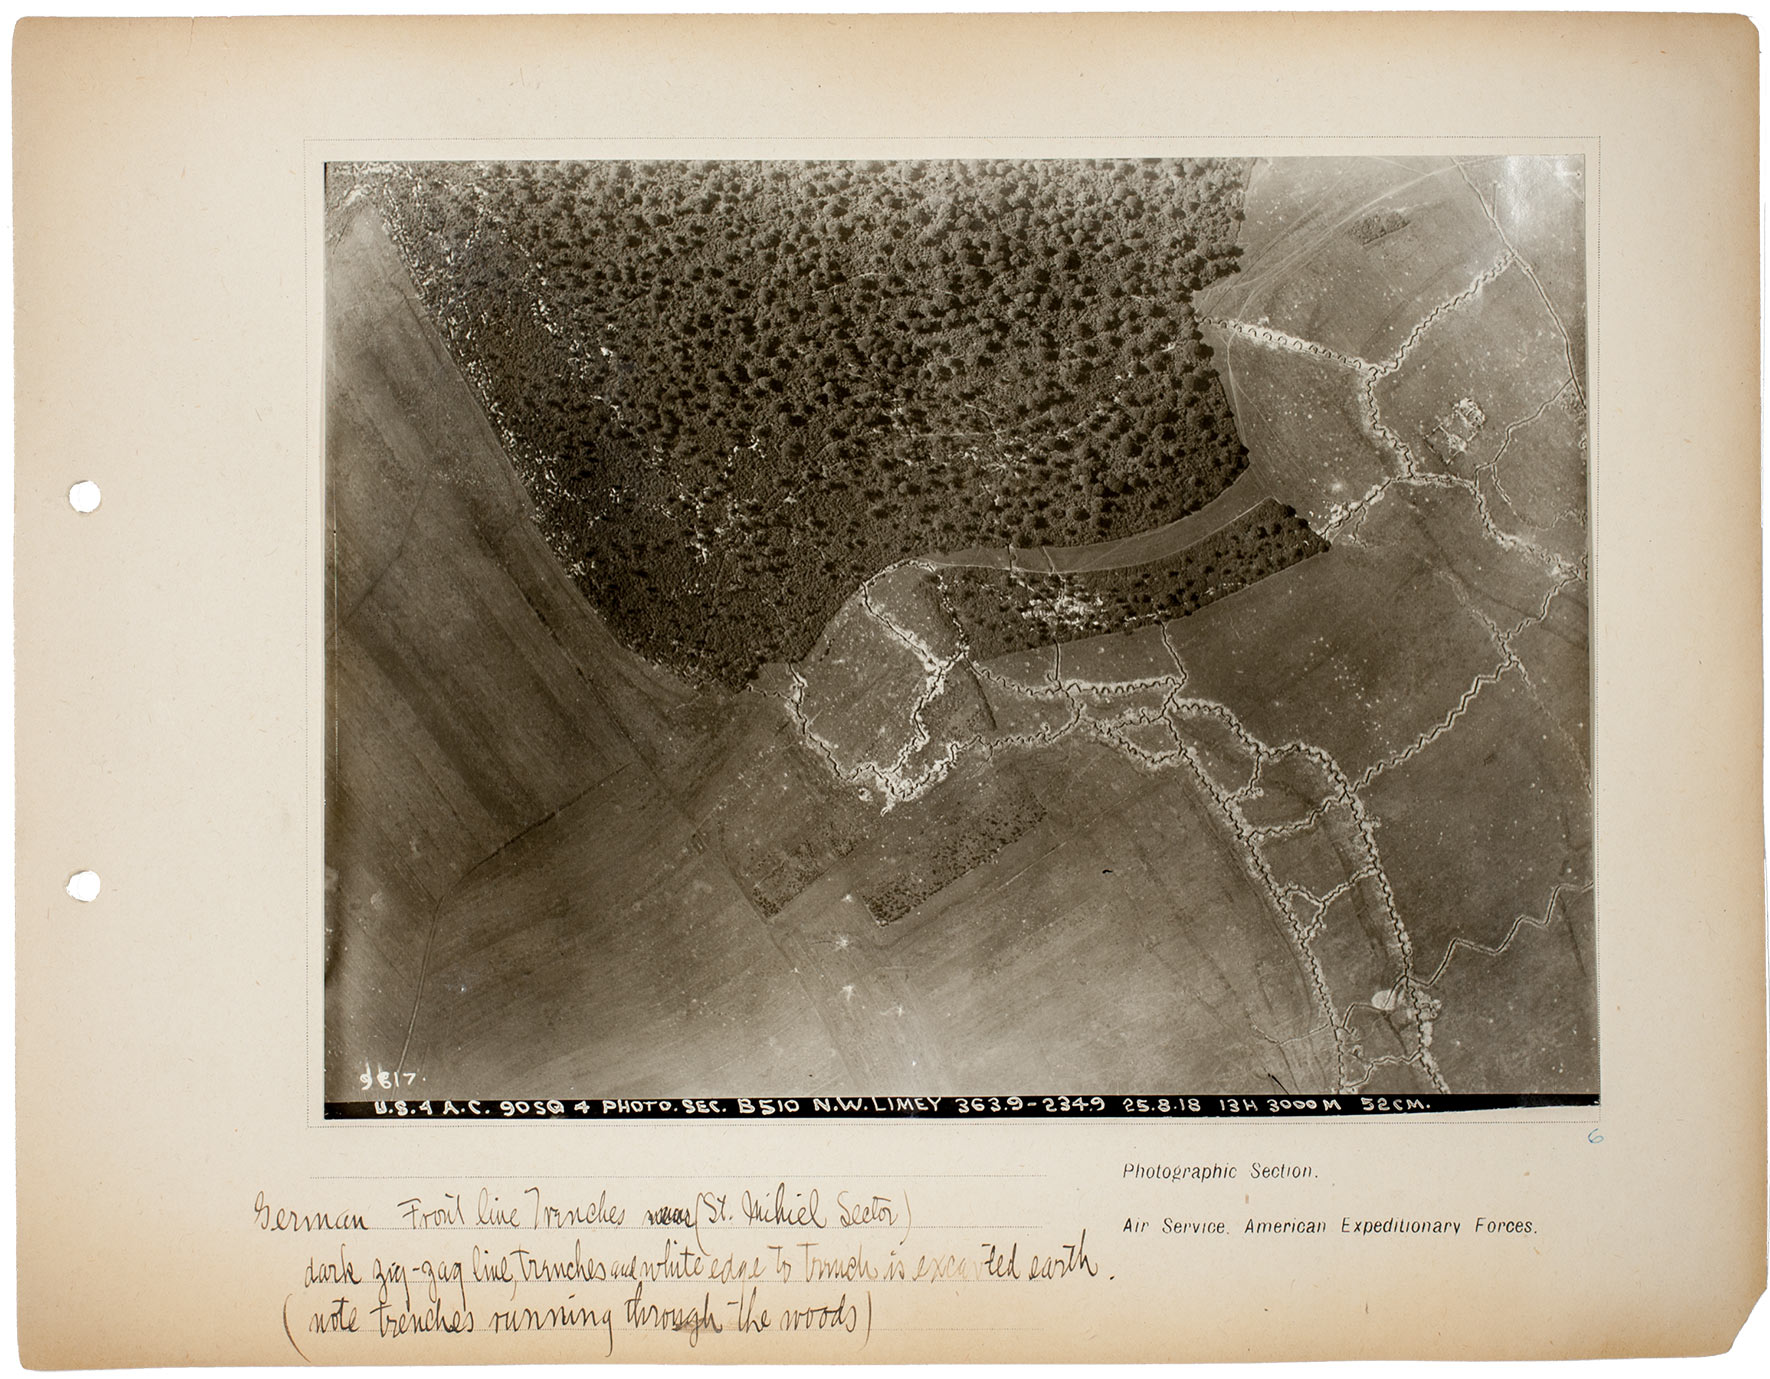 6 German Frontline Trenches St Mihiel Sector Dark Zig Zag Line Wwi Trench Diagram From An Album